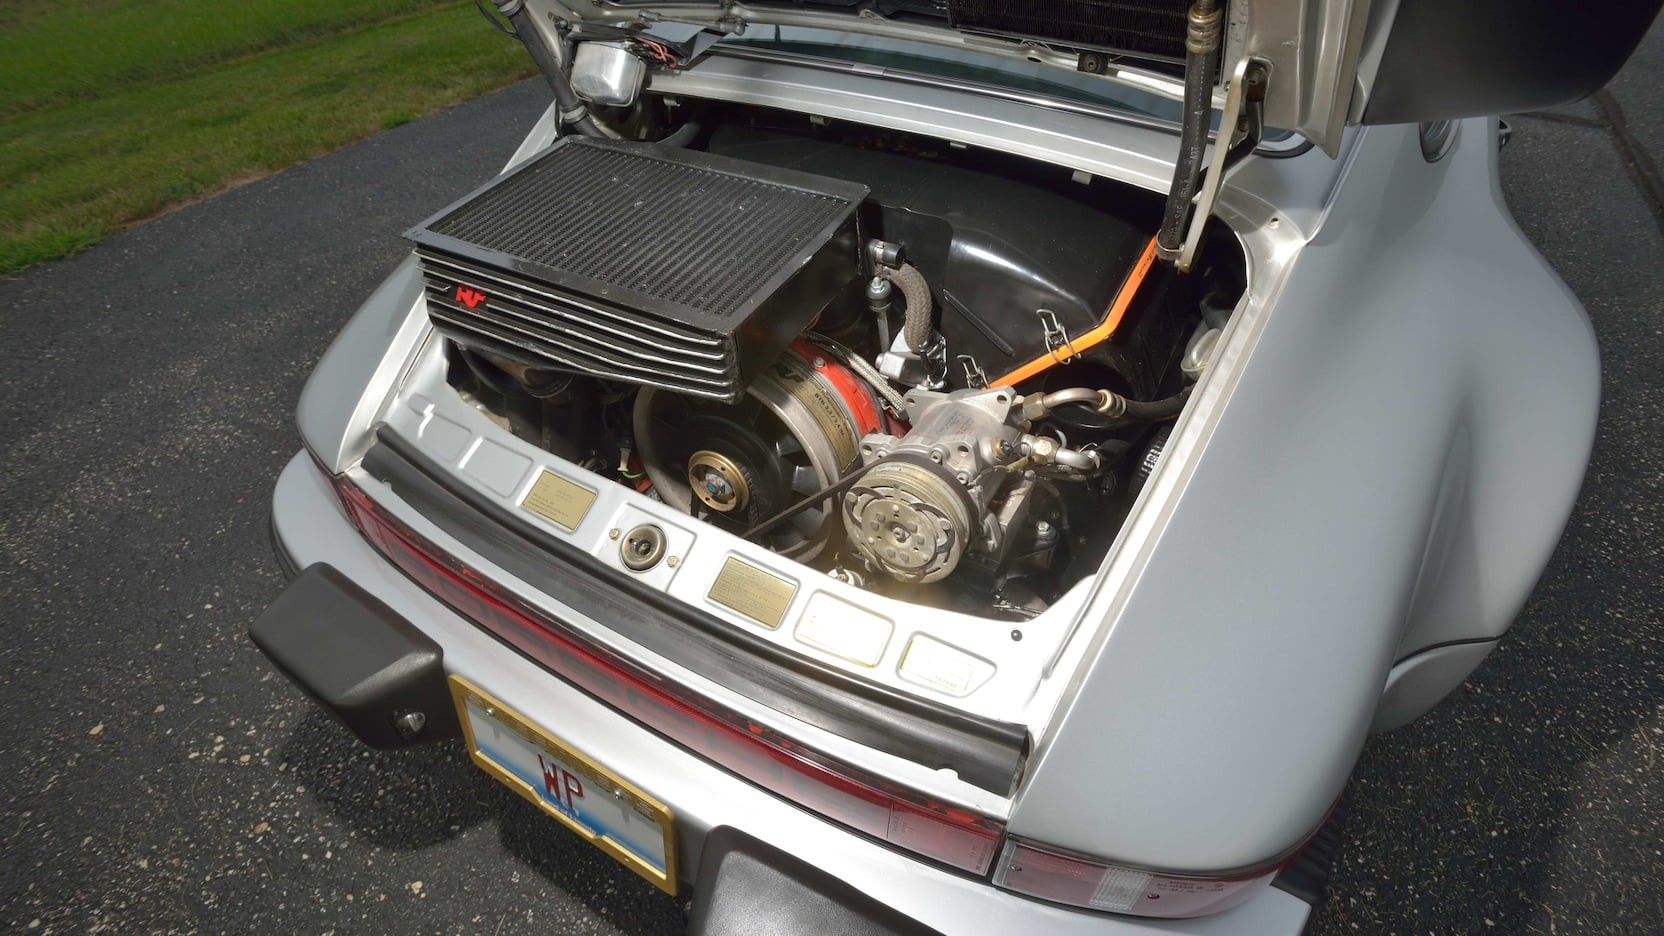 Walter Payton's 1979 Porsche 930 Turbo engine